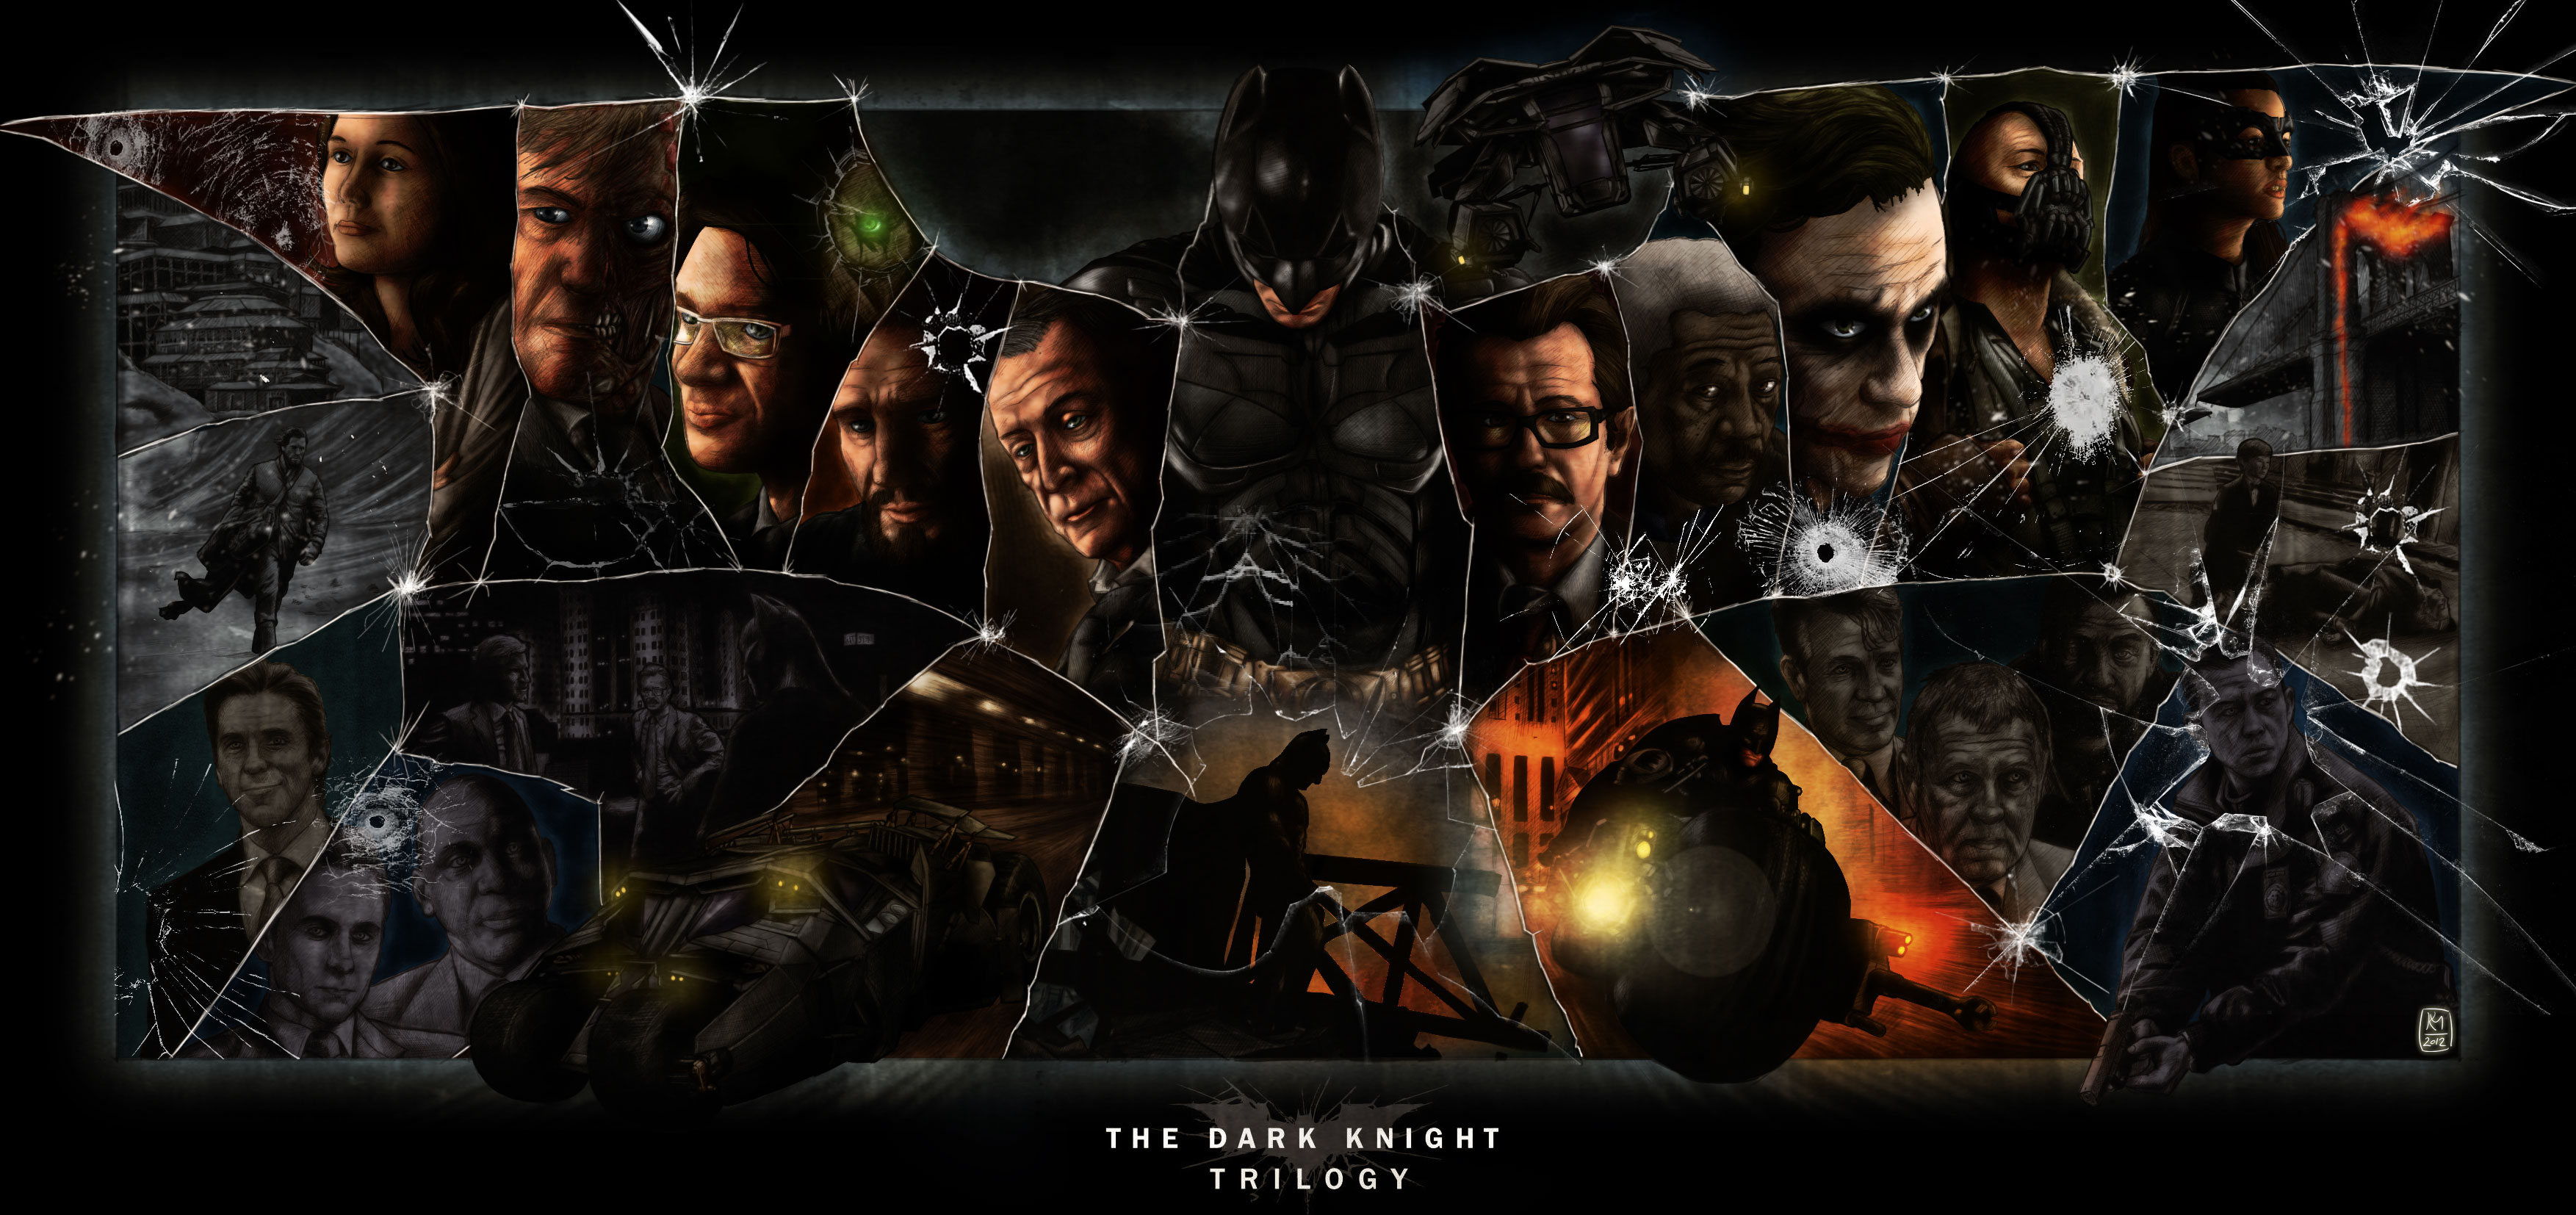 The Dark Knight Trilogy By Kmadden2004 On Deviantart